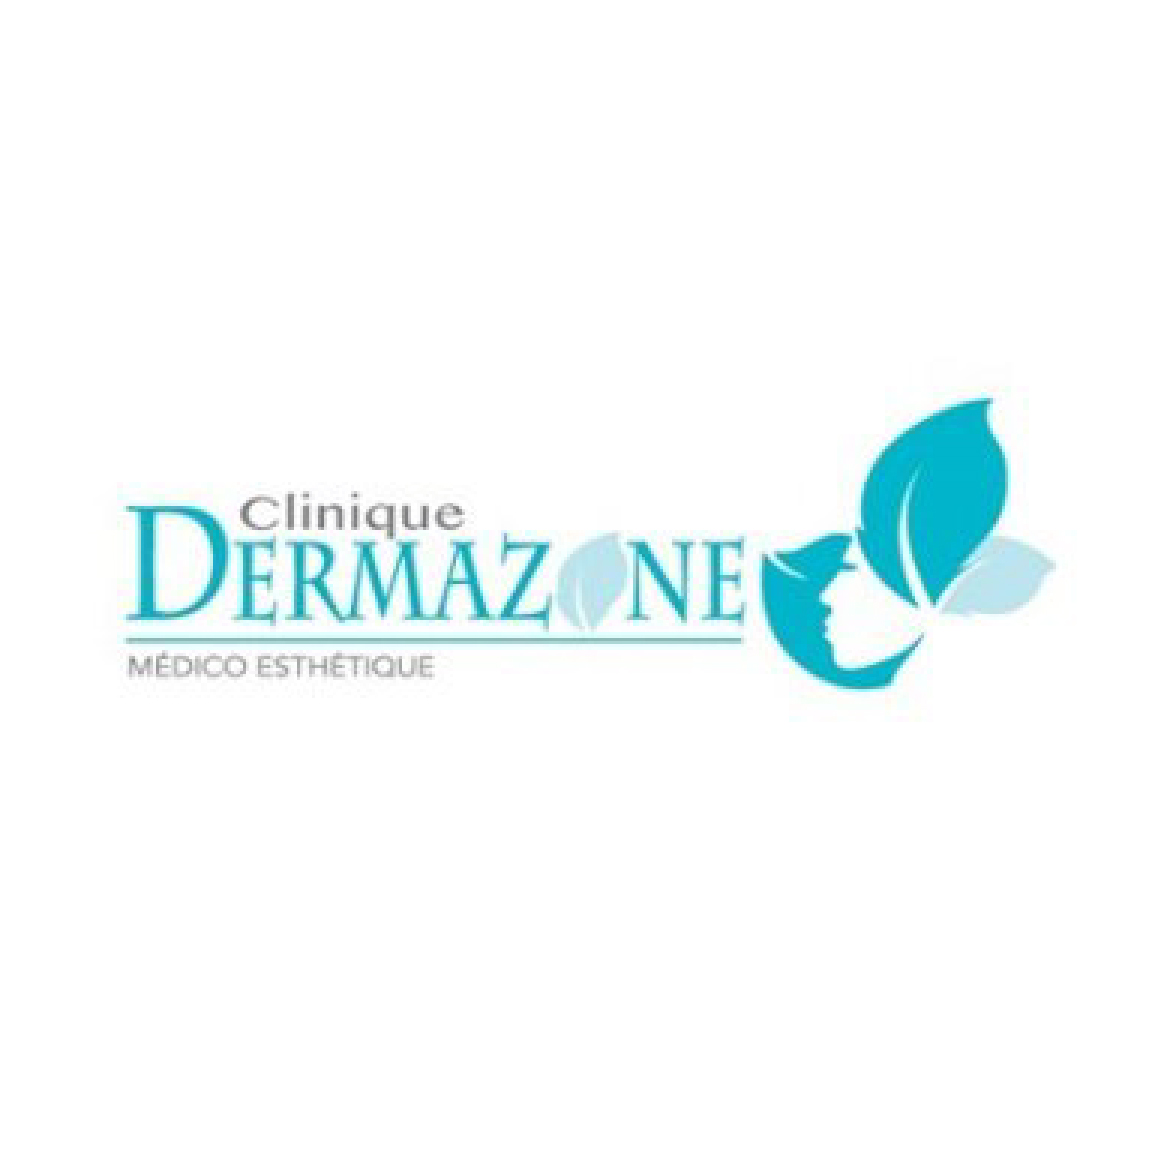 Dermazone clinique